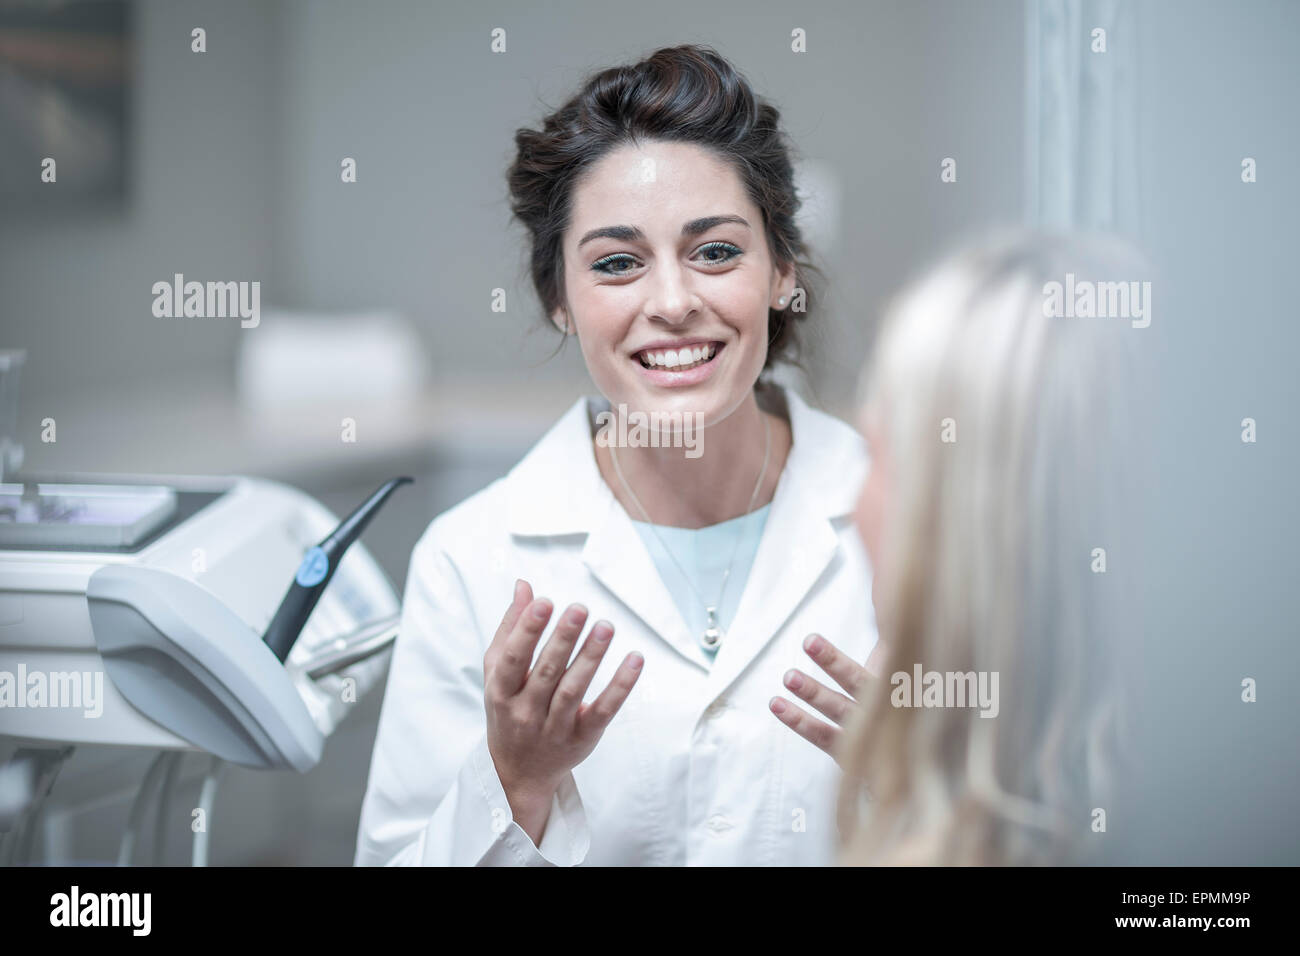 Dentist explaining procedure to patient sitting in dentist's chair - Stock Image